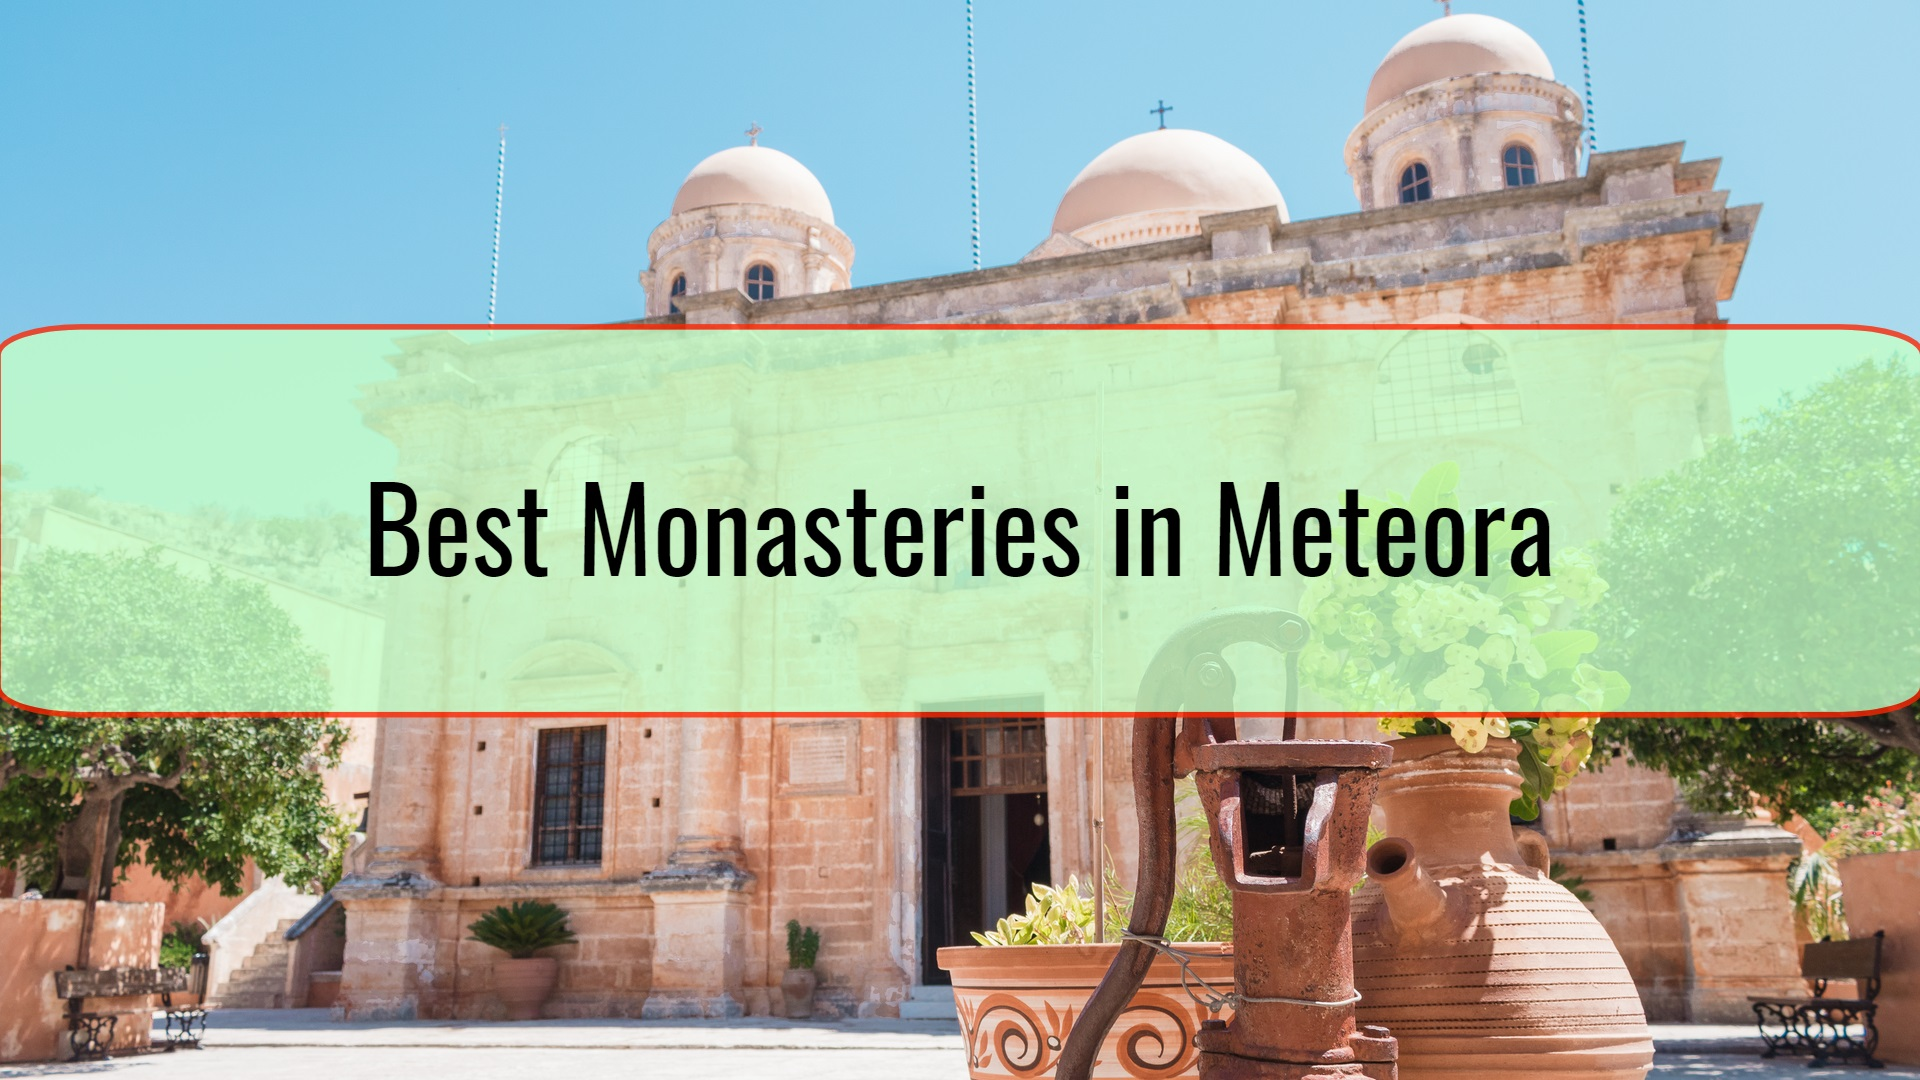 Best Monasteries in Meteora